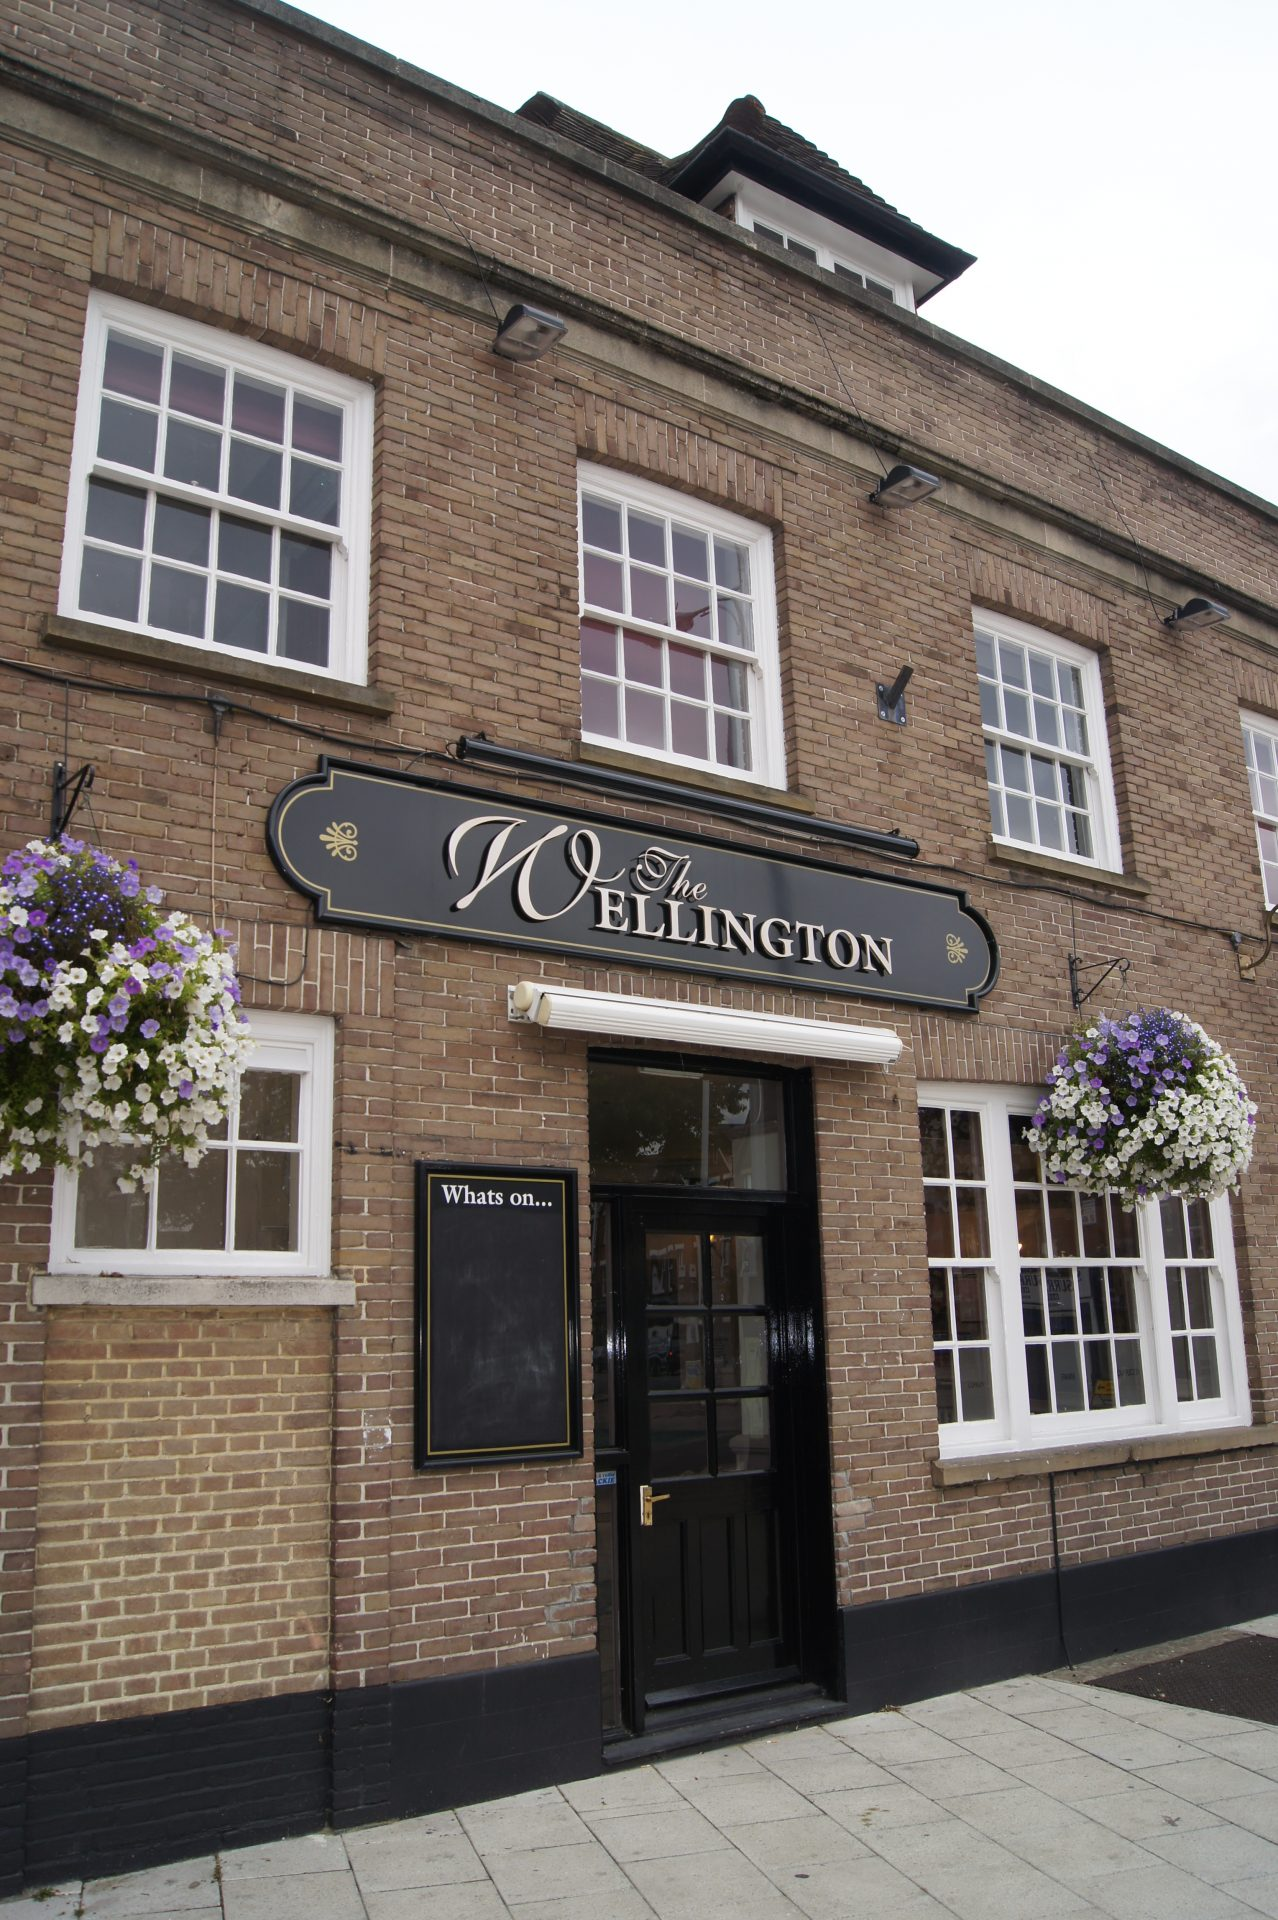 The Wellington, Walton-on-Thames. Image courtesy of Darren Bayley, Walton-on-Thames.org, 2011